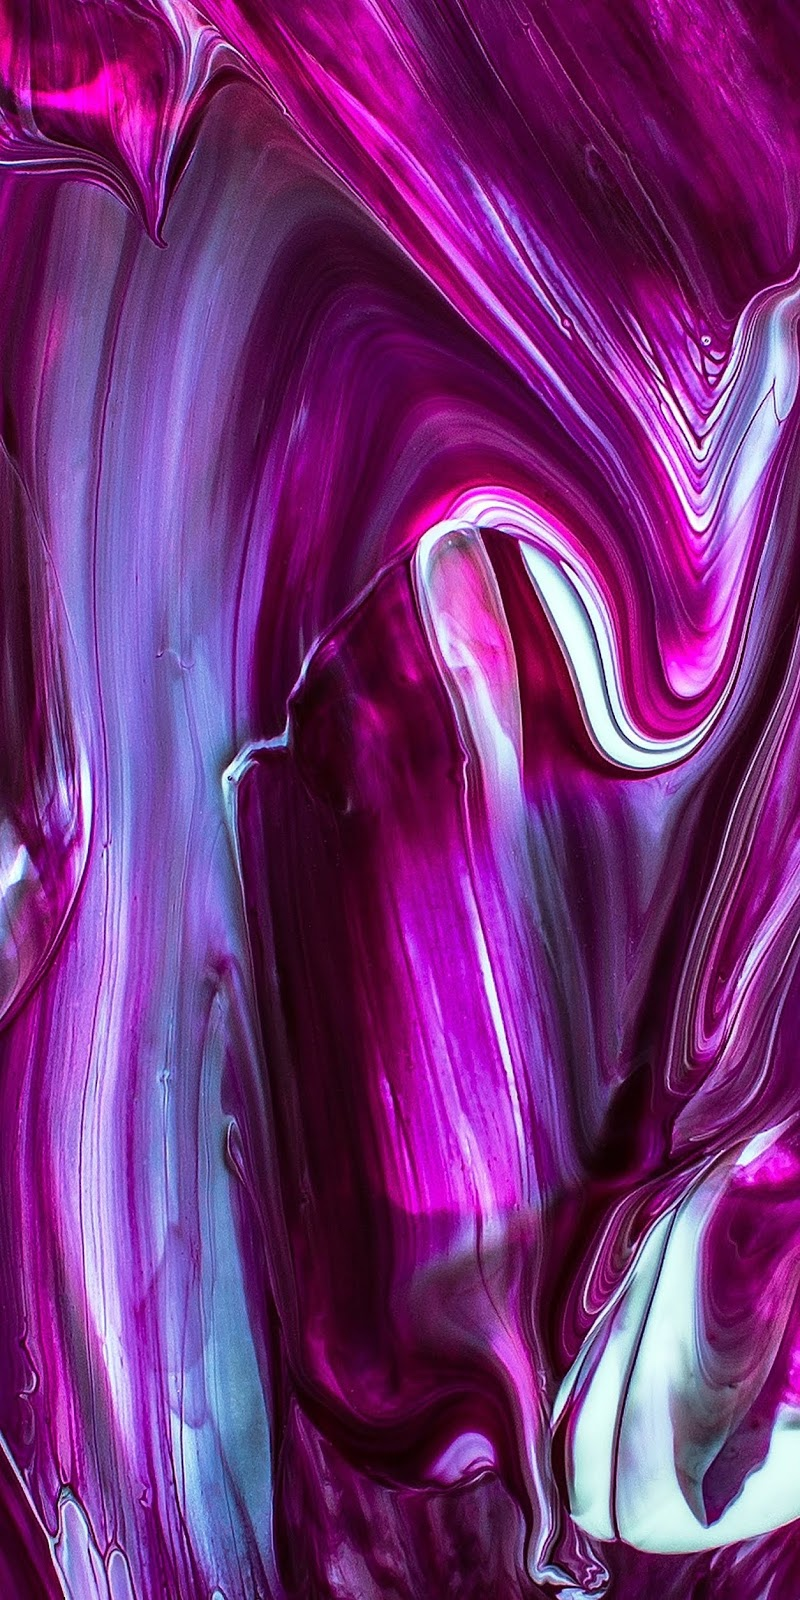 Purplish abstract